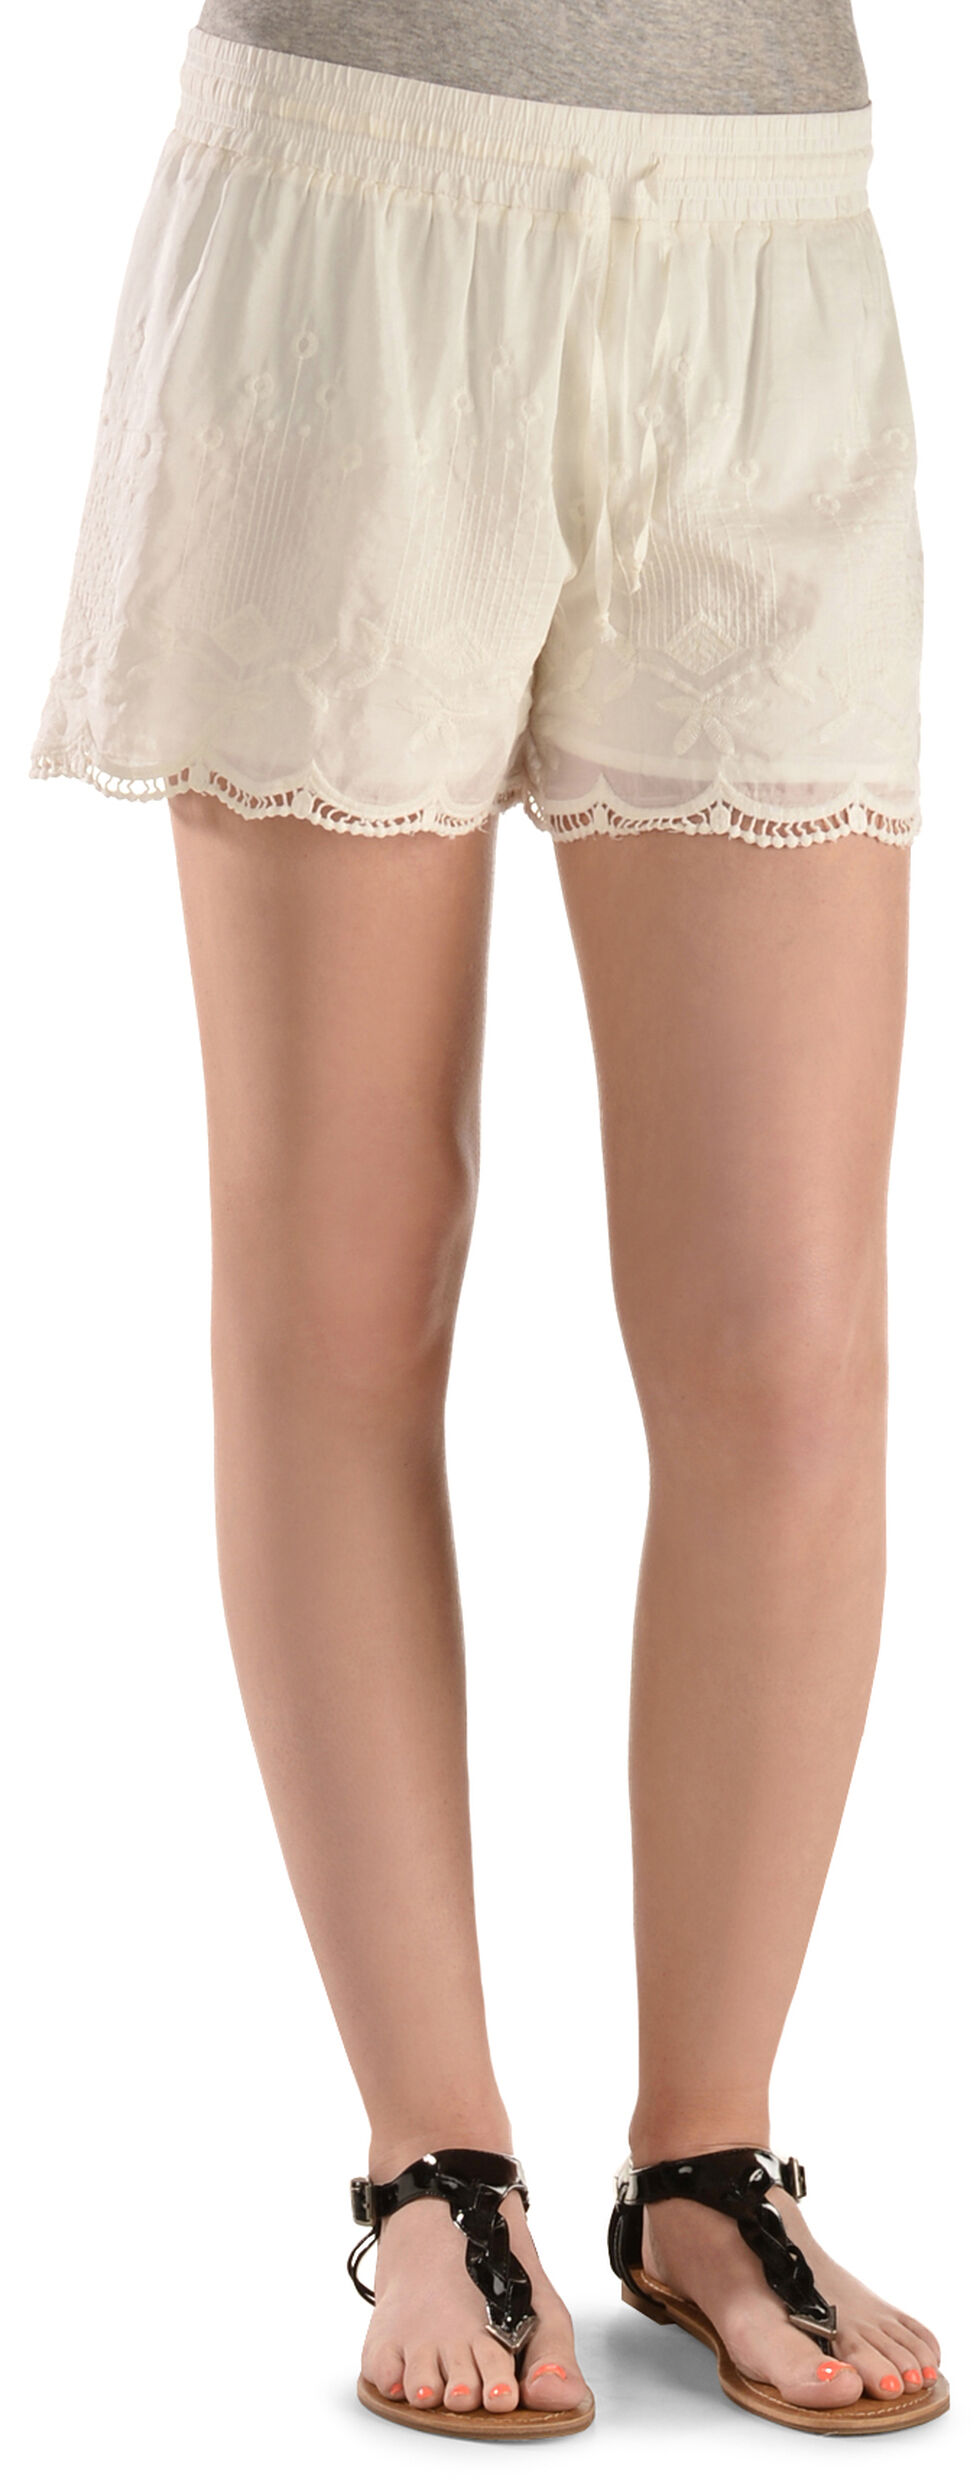 Black Swan White Queen's Lace Shorts, White, hi-res